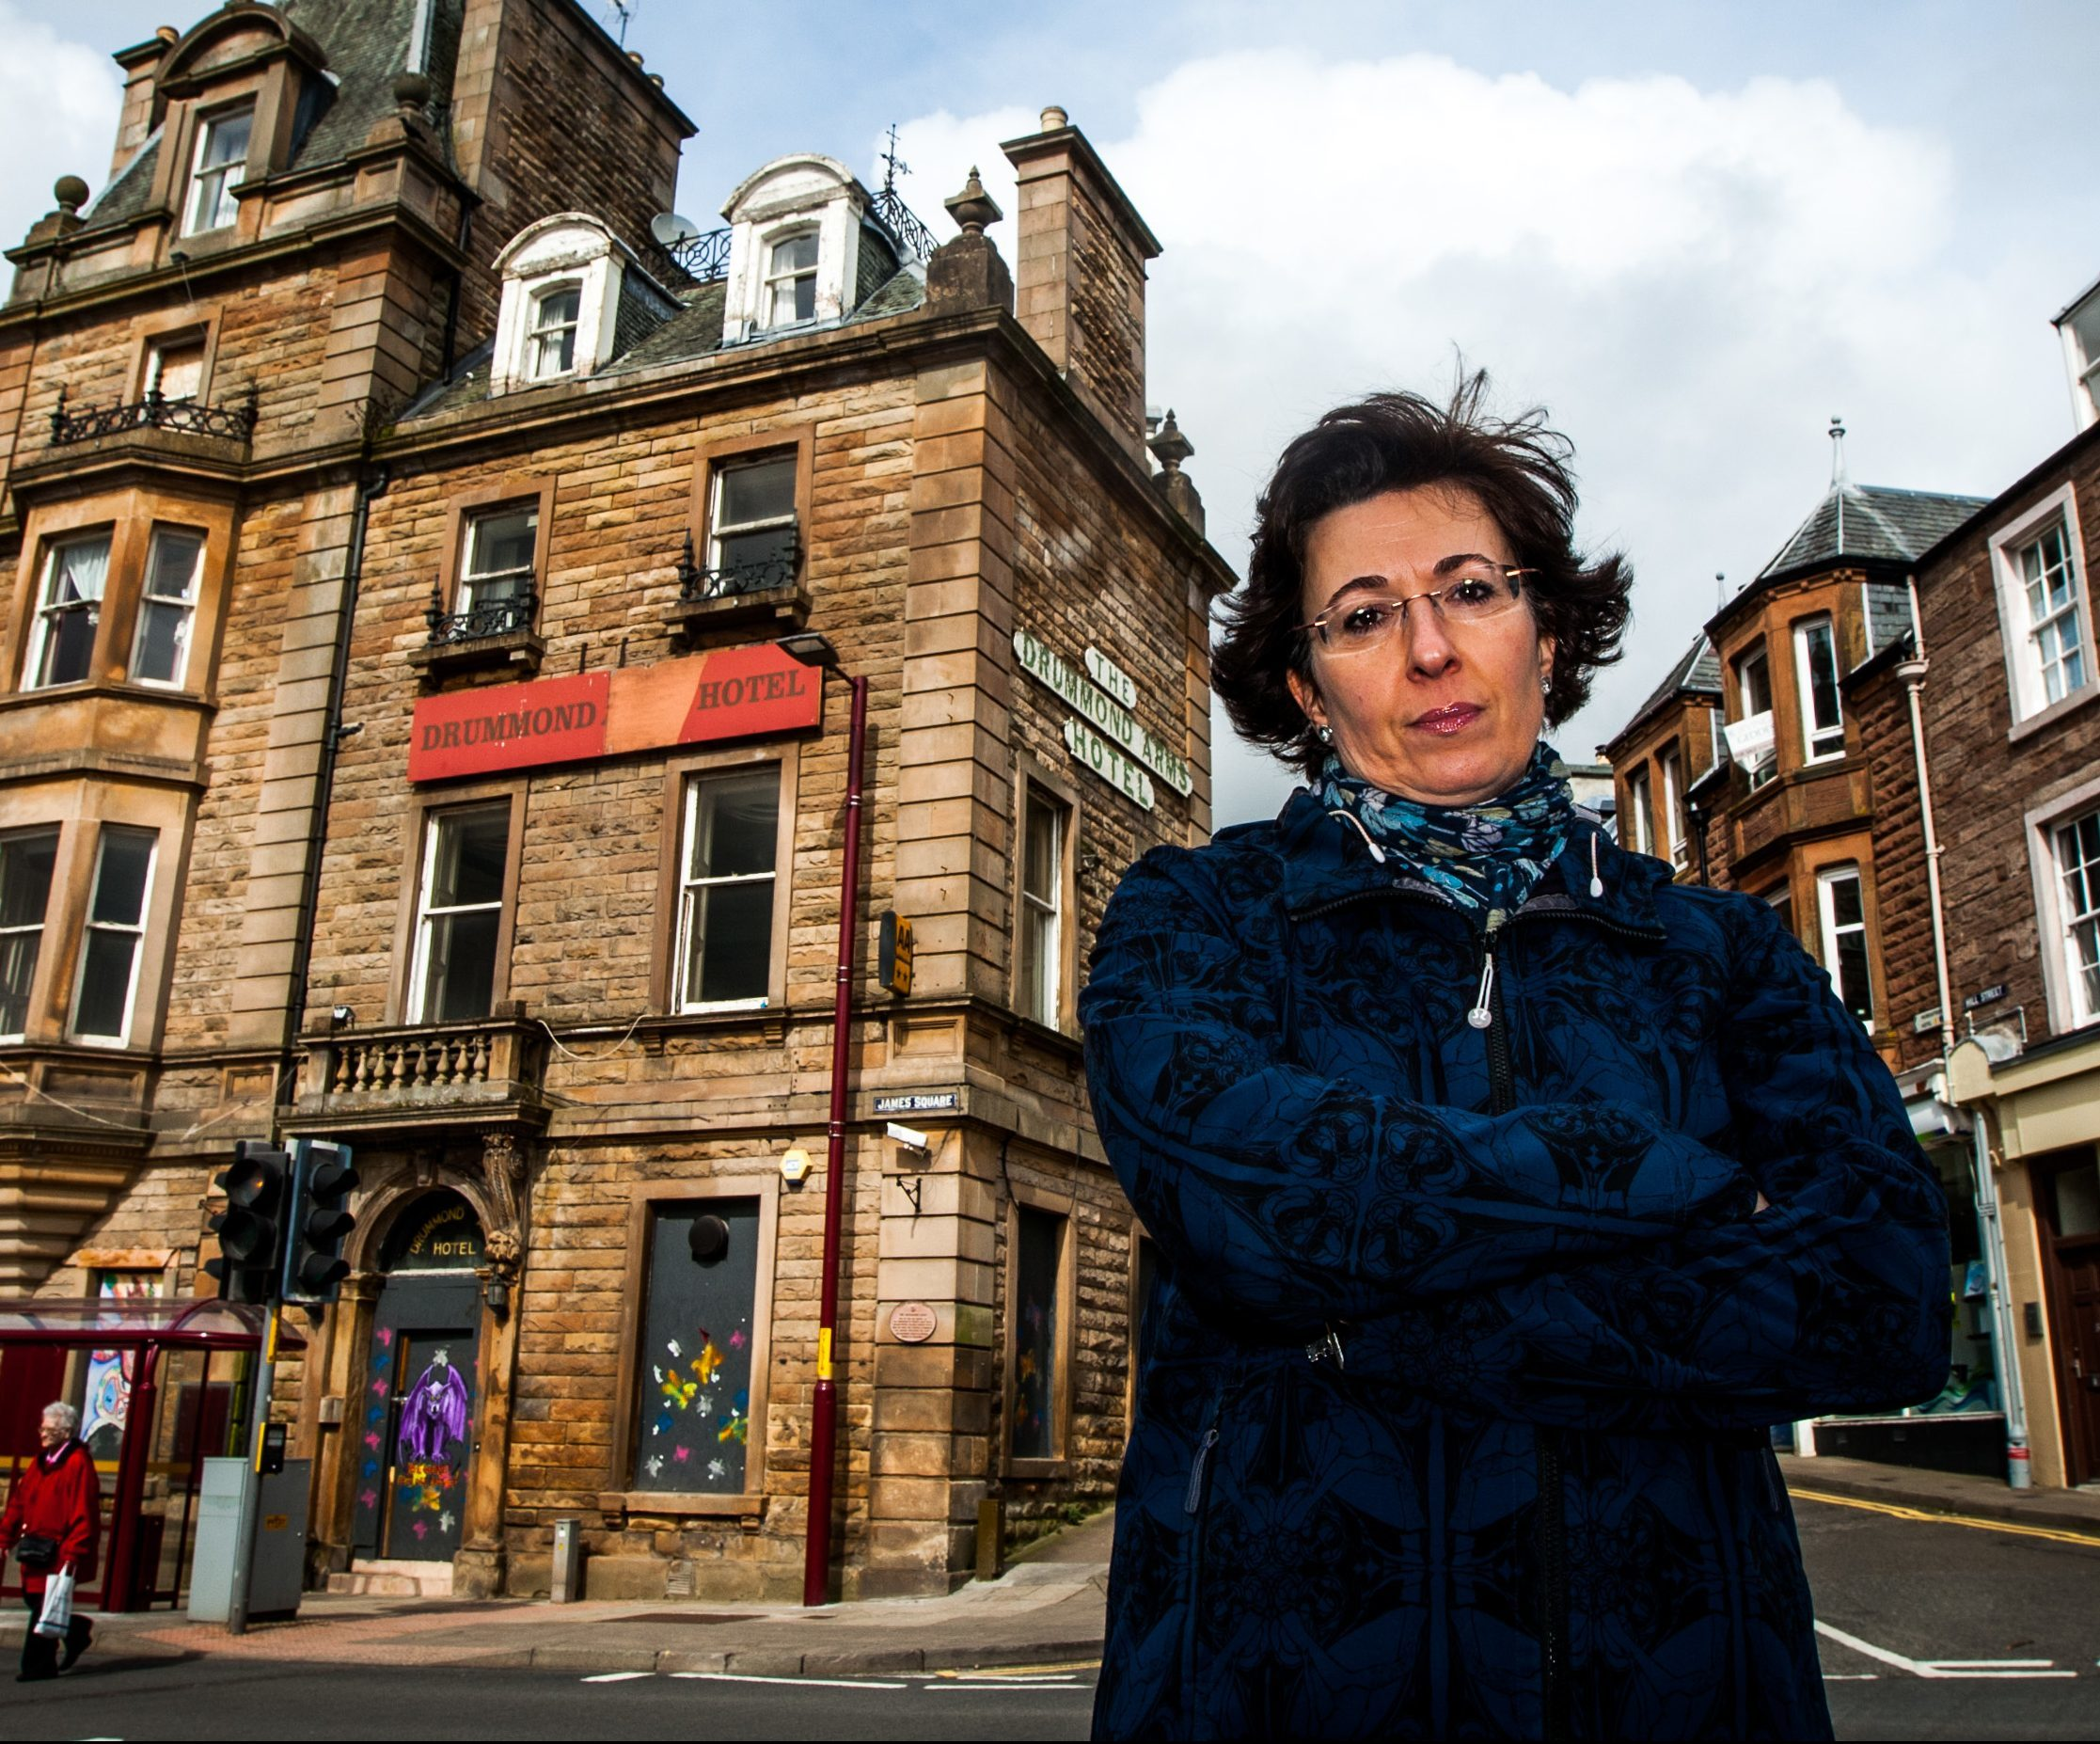 Ailsa Campbell, chair of Crieff Community Trust, outside the Drummond Arms Hotel.